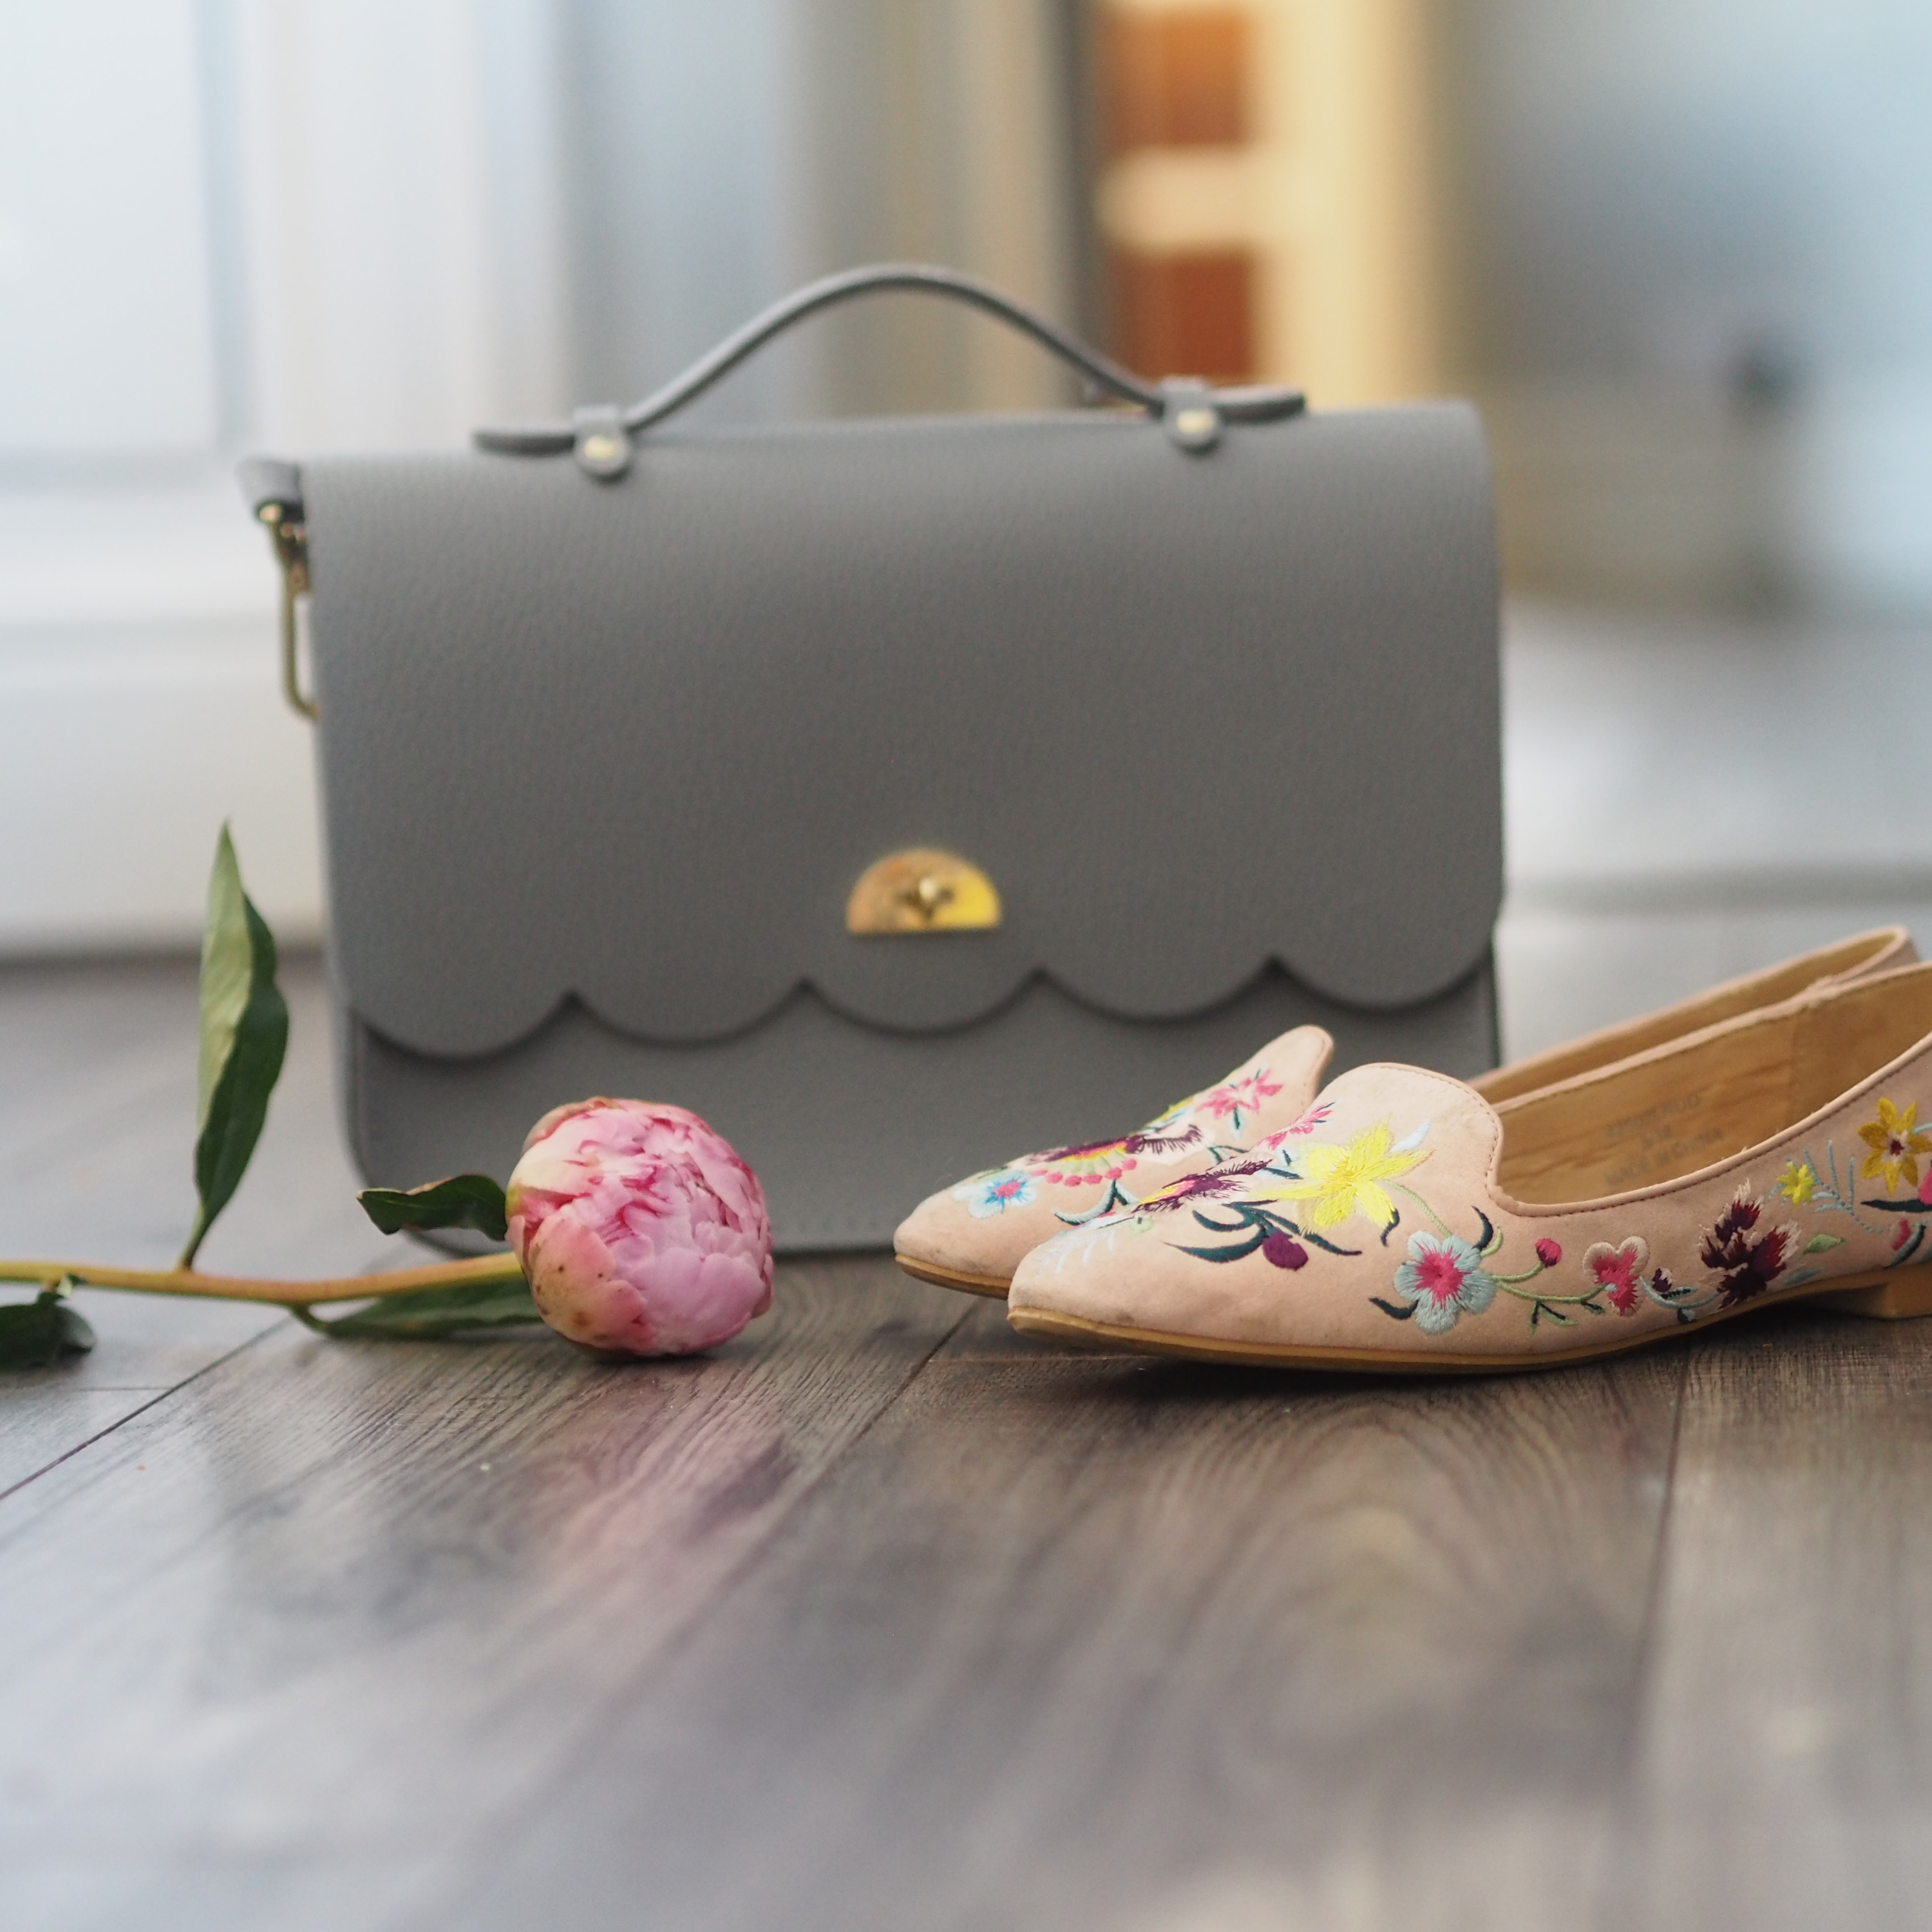 OOTD Topshop embroidered pumps, Cambridge Satchel Company bag